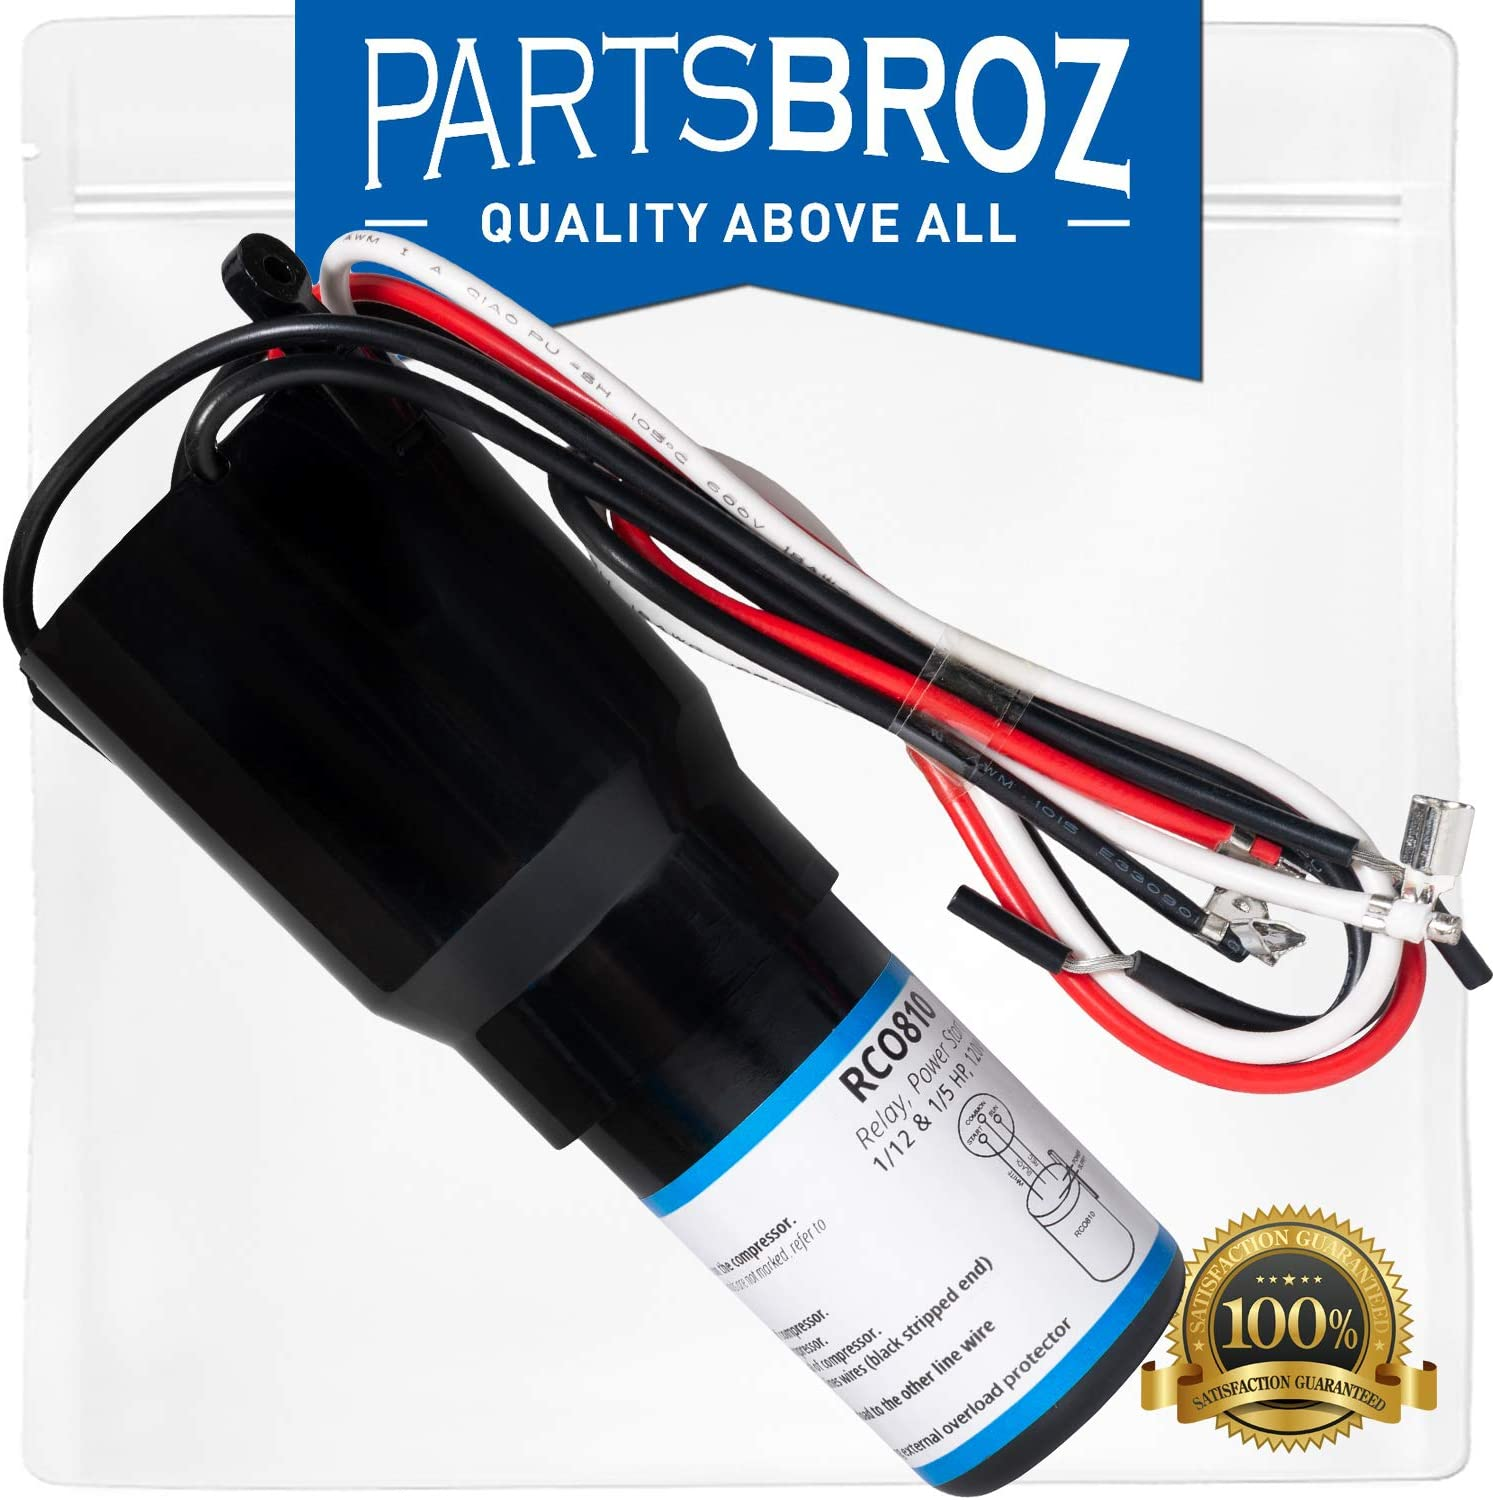 RCO810 3-in-1 Relay Combo Kit for Capillary Refrigeration Systems by PartsBroz - 1/12 to 1/5 HP - Replaces Parts Numbers TJ90RCO810, AP4503019, ERP810, HS8, HS810, RC0810 & RC100